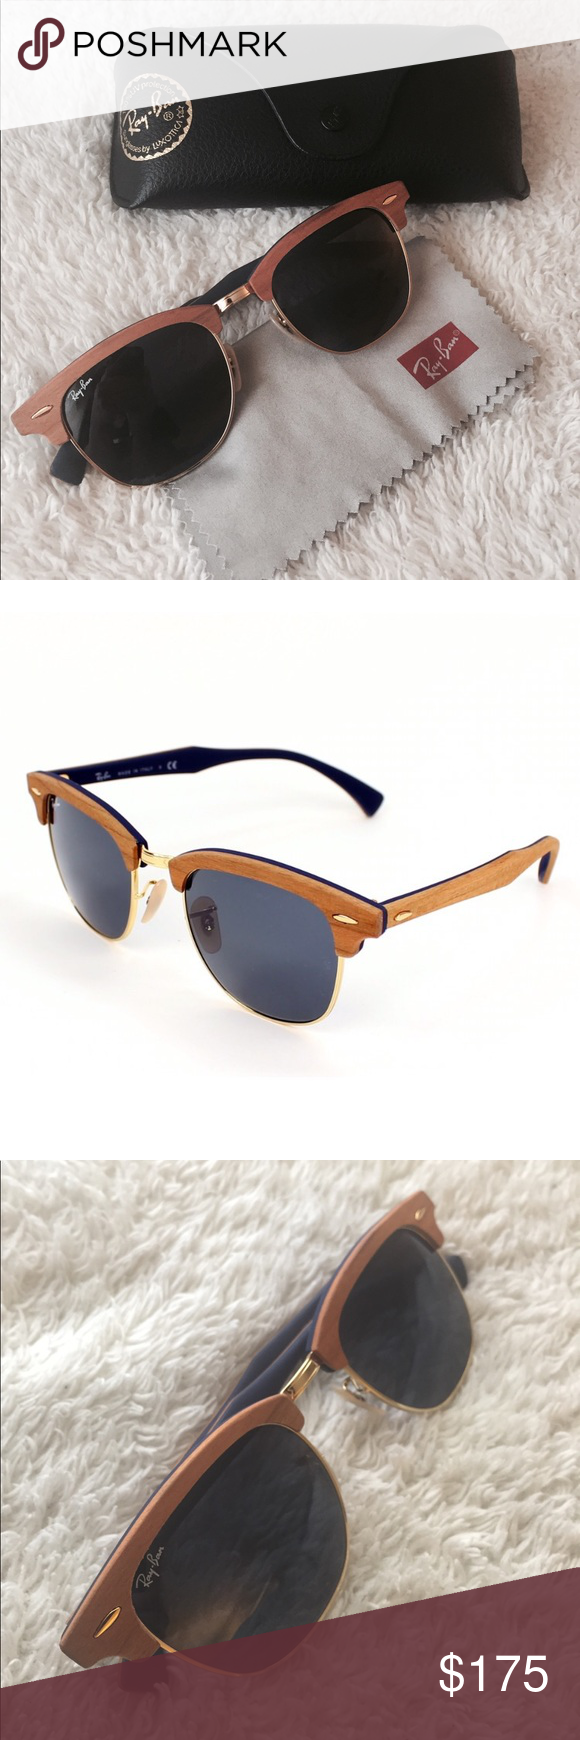 Ray-Ban Clubmaster Wood Sunglasses Wood brown frame with blue gray classic  lenses. 45c4d2d2cf